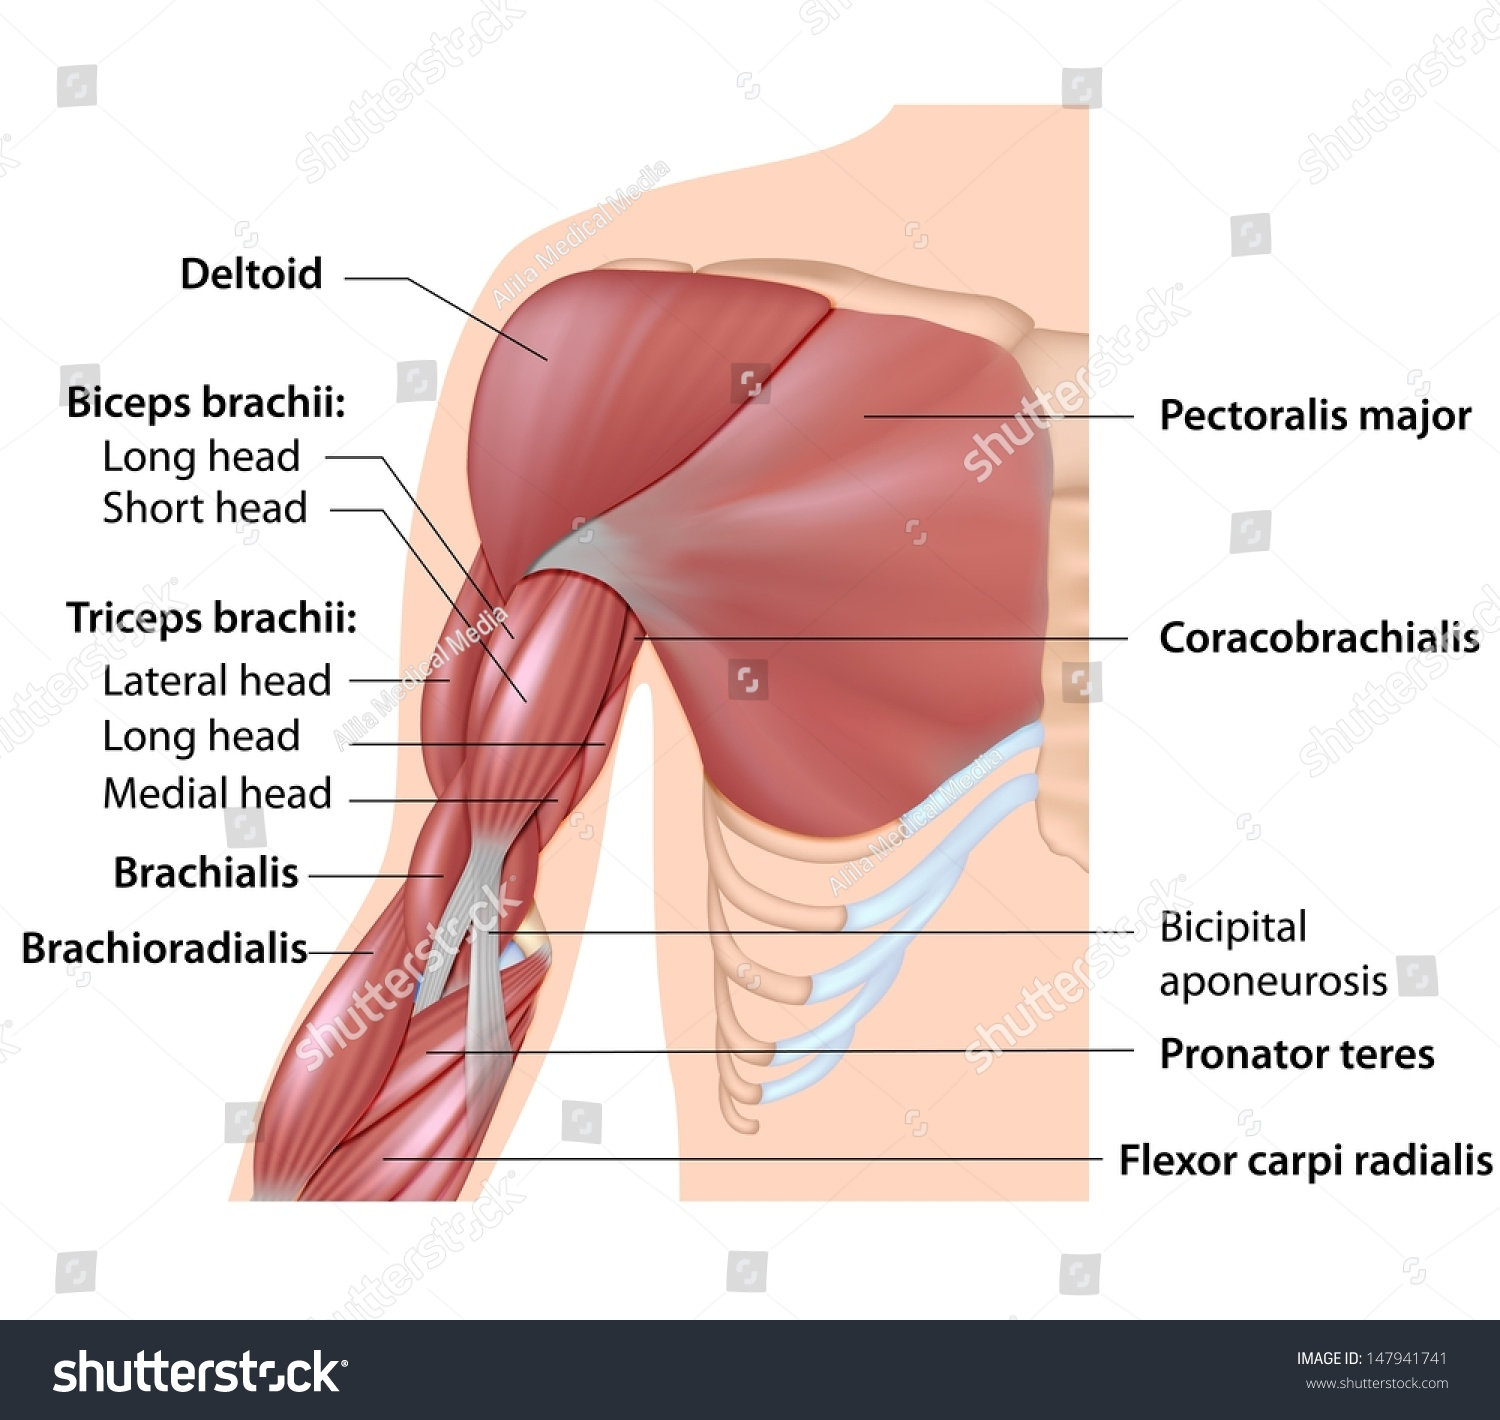 Muscles Arm Anatomy Labeled Diagram Stock Illustration - Royalty ...